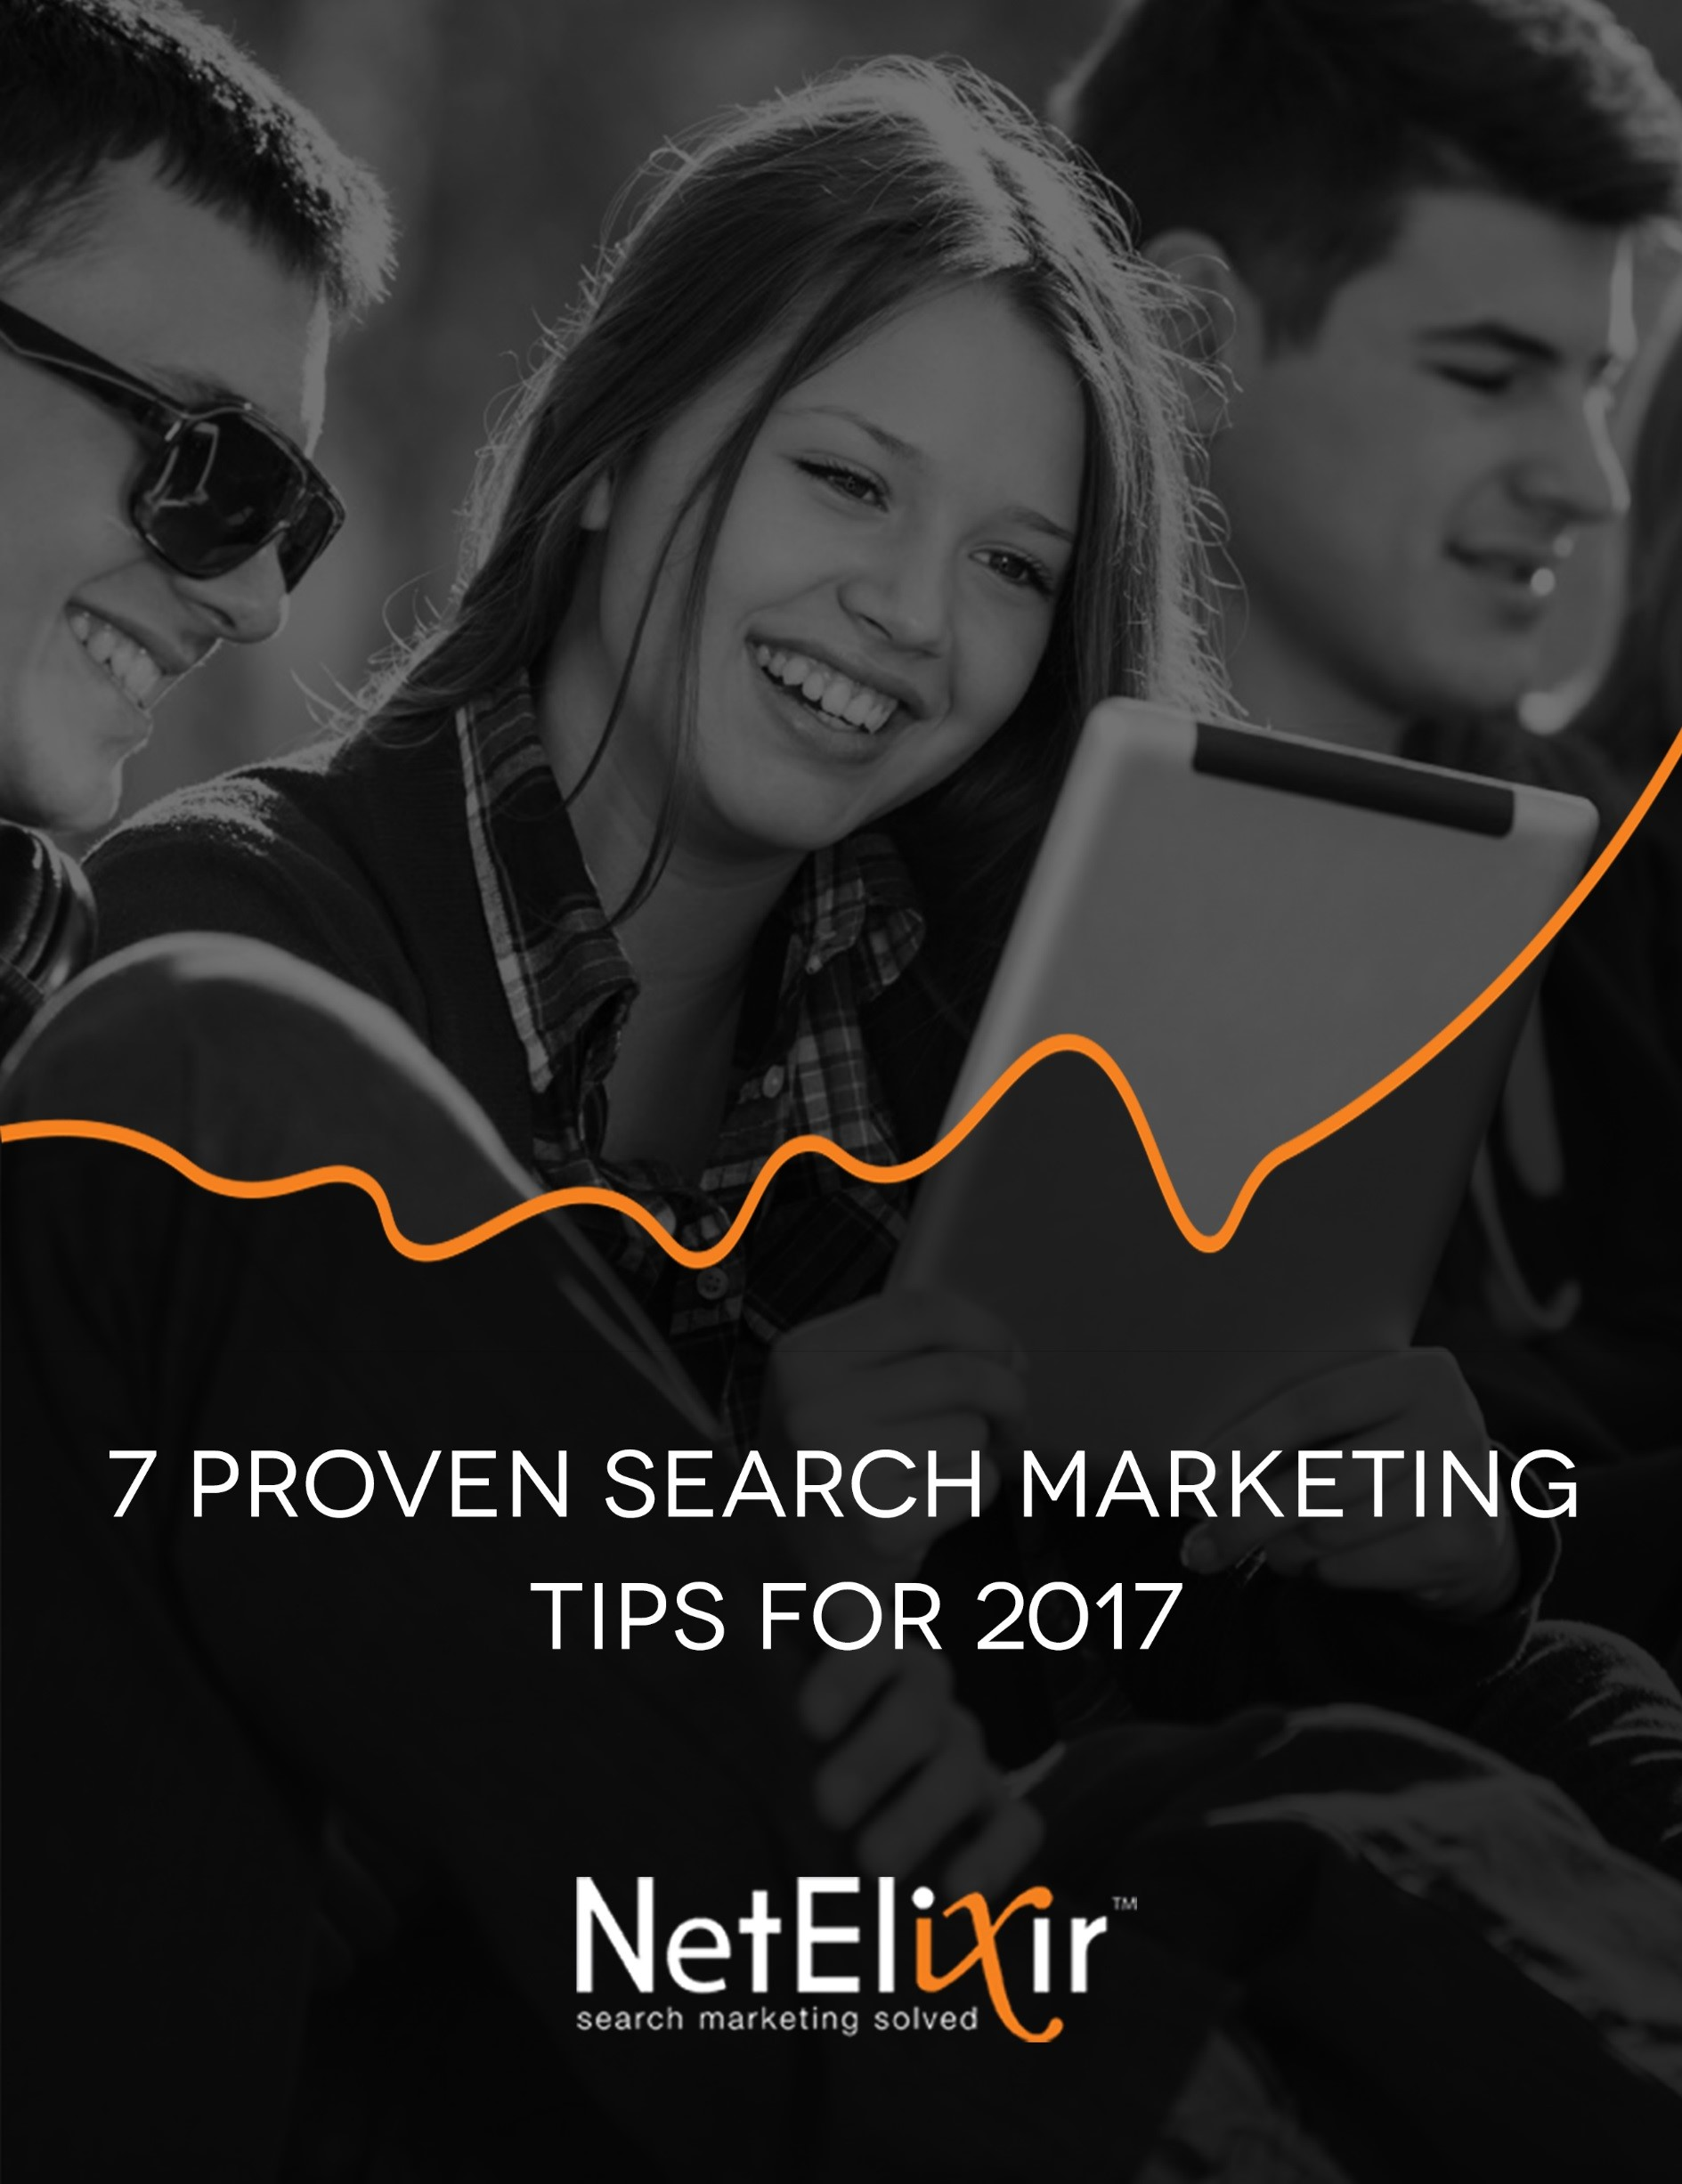 7-proven-search-marketing-tips-for-2017